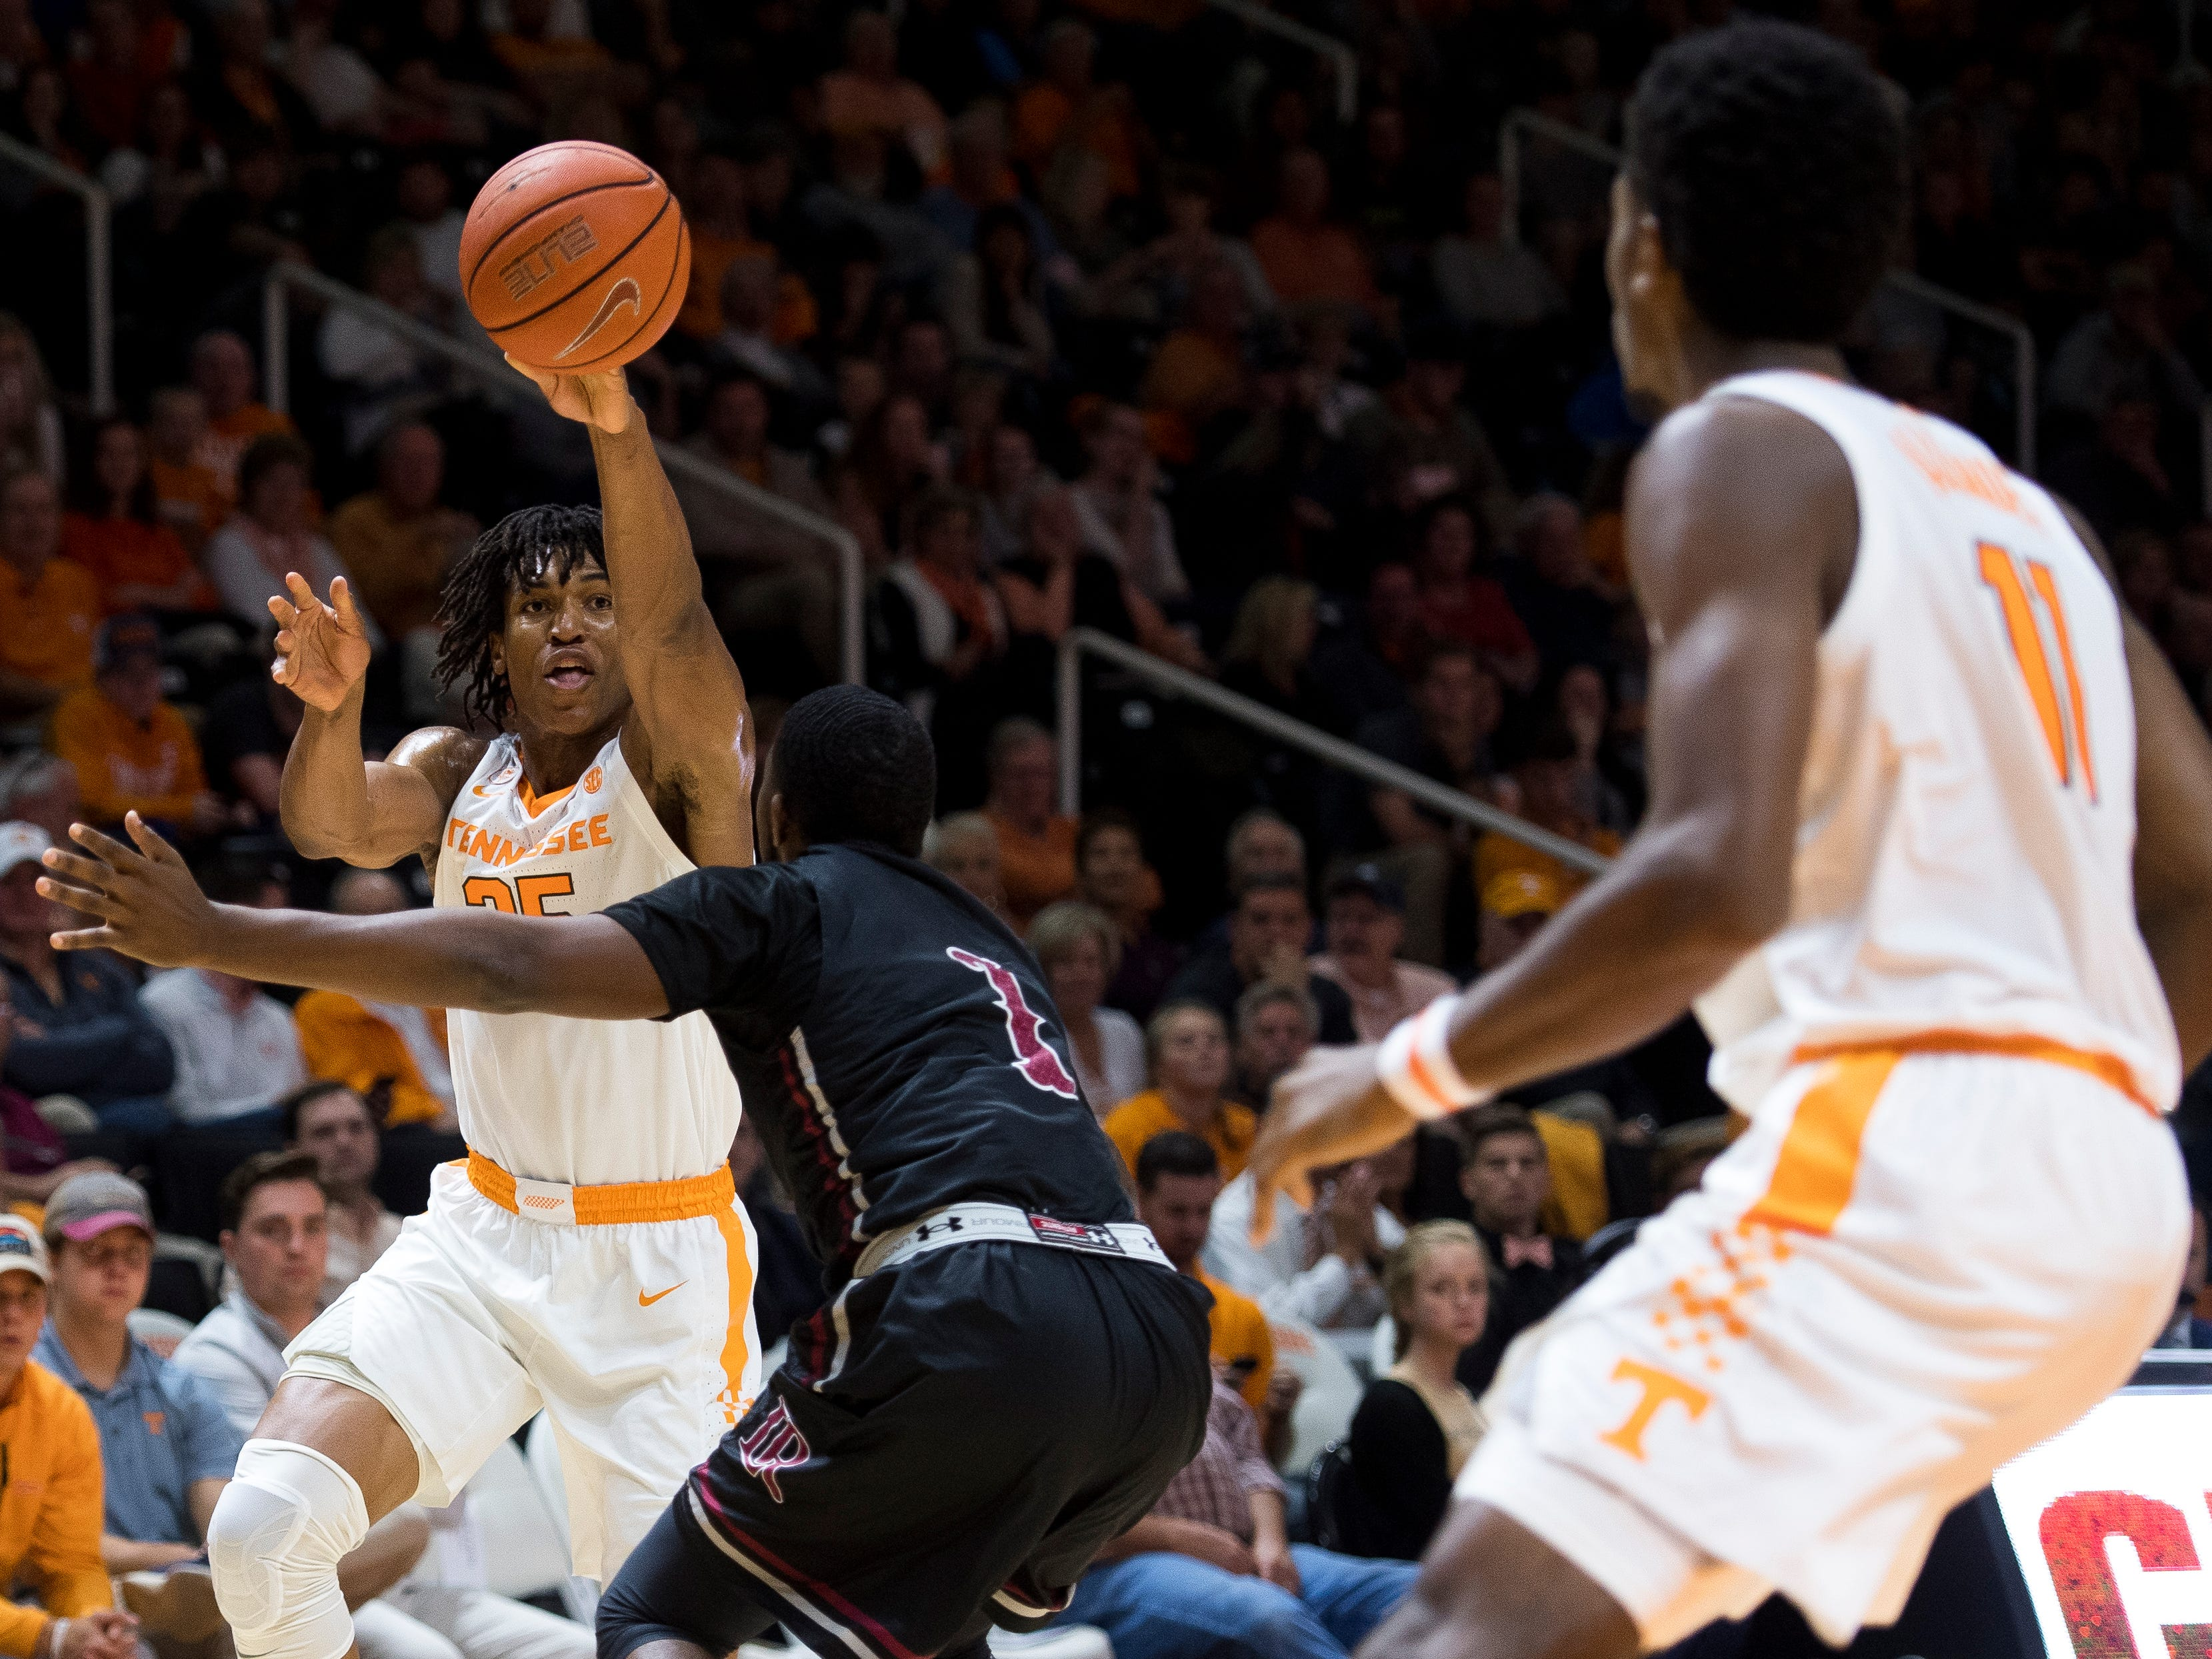 Tennessee guard/forward Yves Pons (35) passes the ball to Tennessee forward Kyle Alexander (11) during Tennessee's basketball game against Lenoir-Rhyne at Thompson-Boling Arena in Knoxville on Tuesday, November 6, 2018.